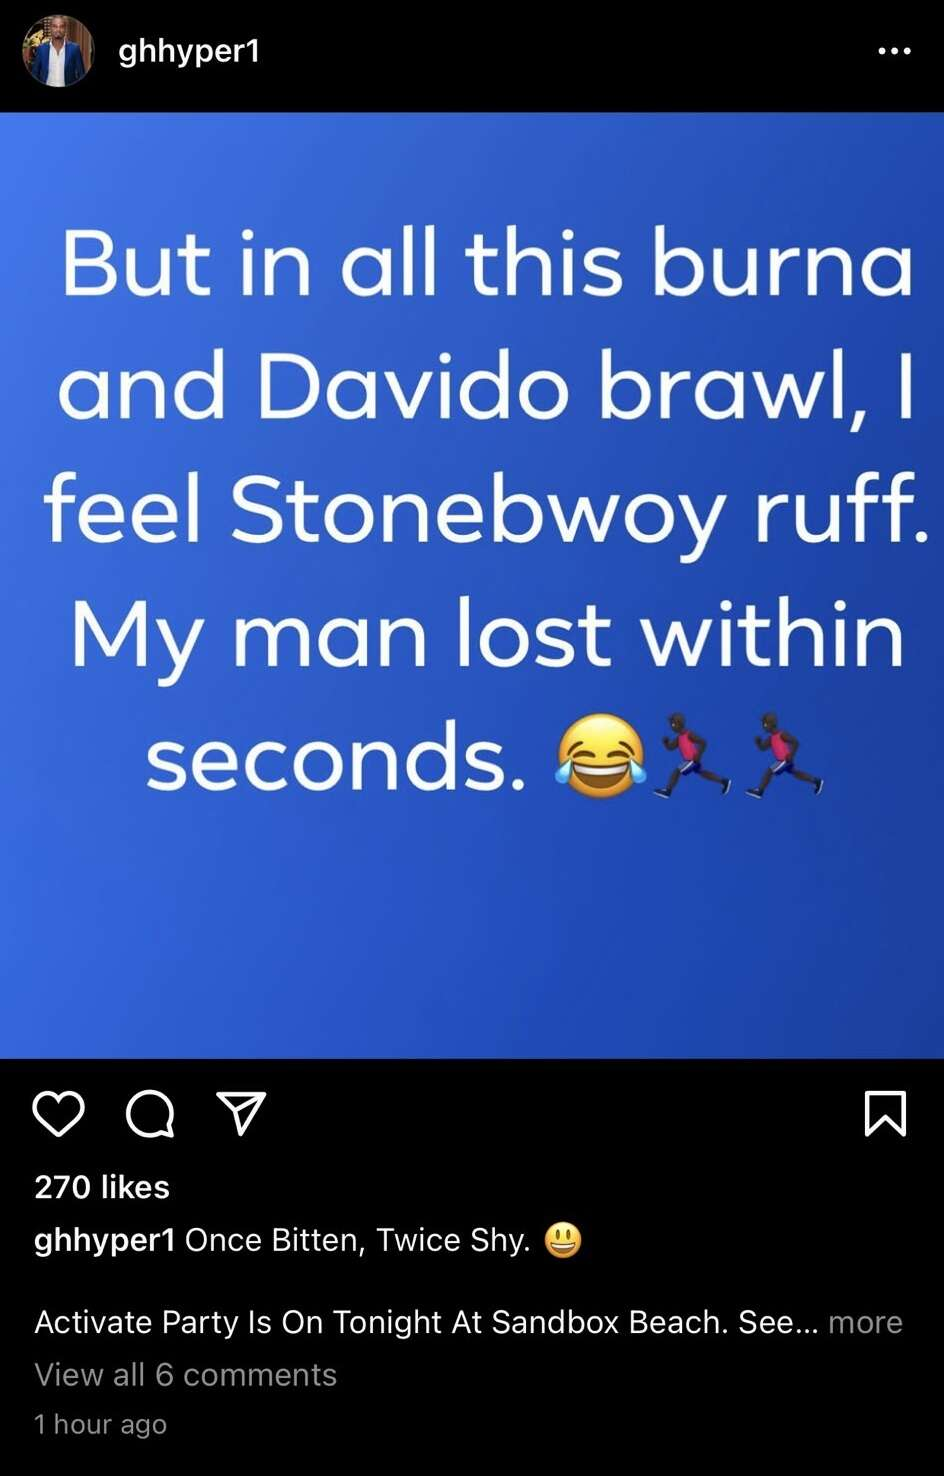 Burna Boy and Davido reportedly exchange blows during hot fight in Ghana (Photos & Video)